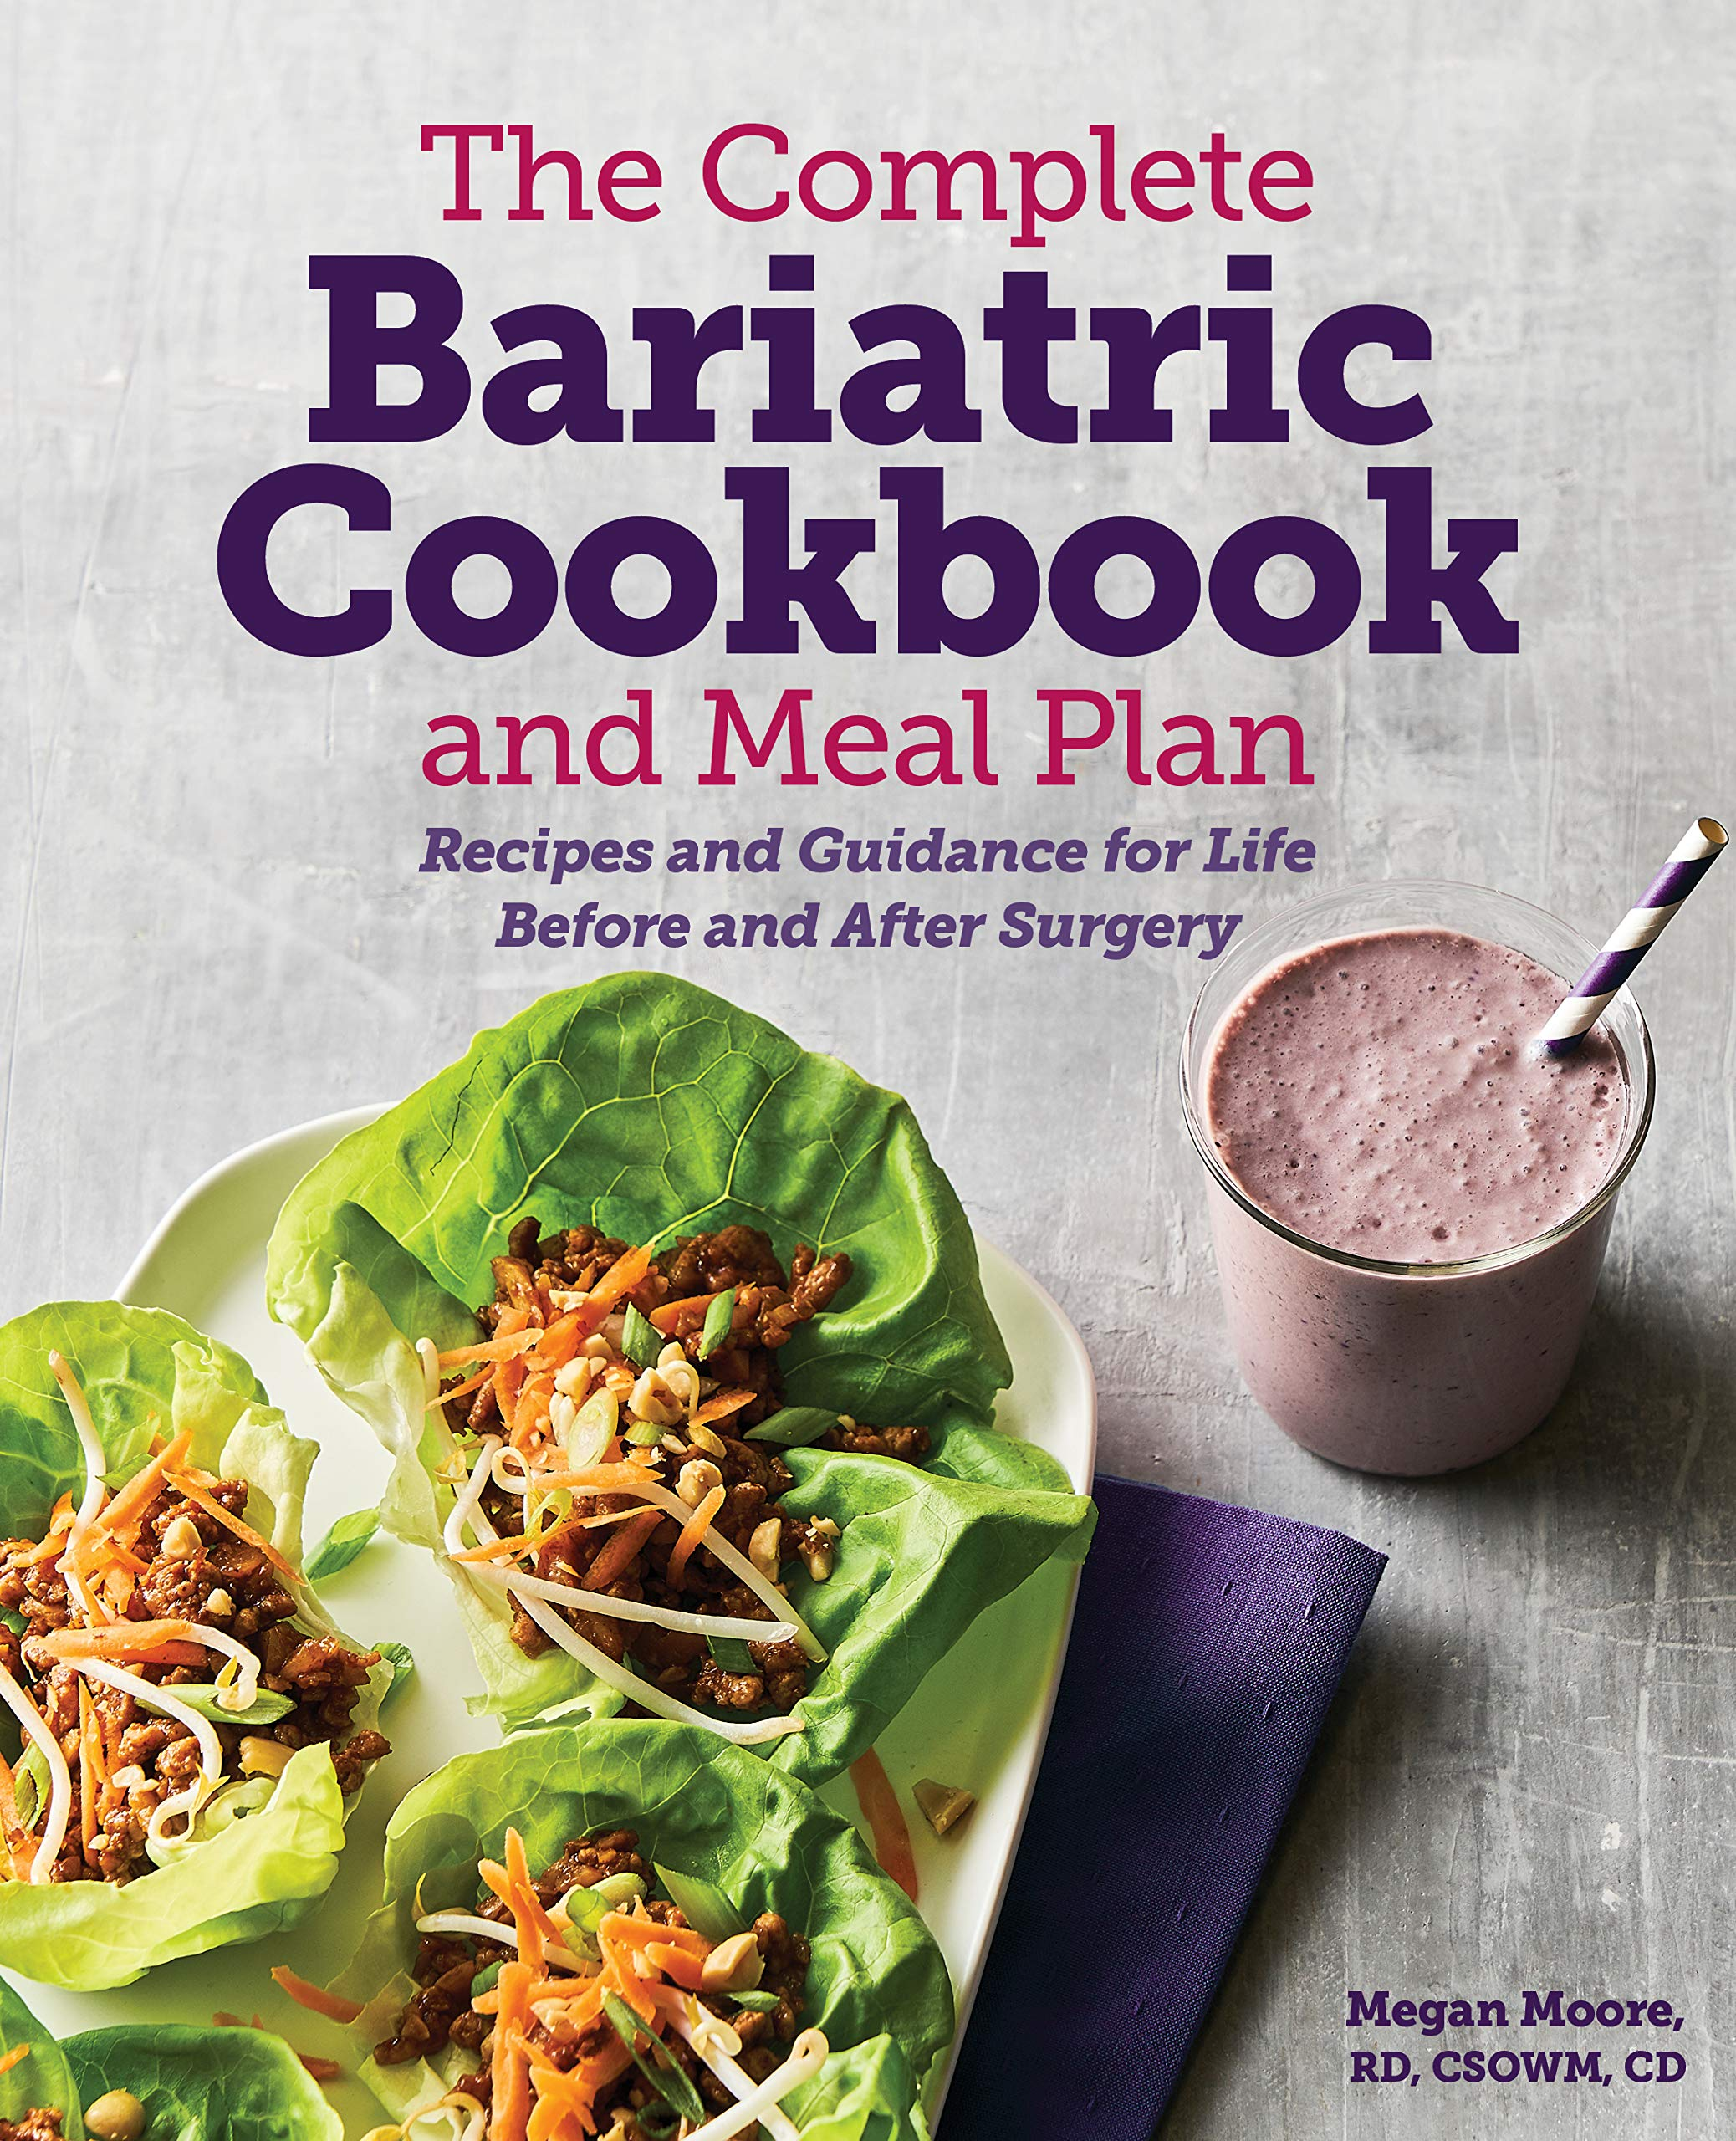 Image OfThe Complete Bariatric Cookbook And Meal Plan: Recipes And Guidance For Life Before And After Surgery